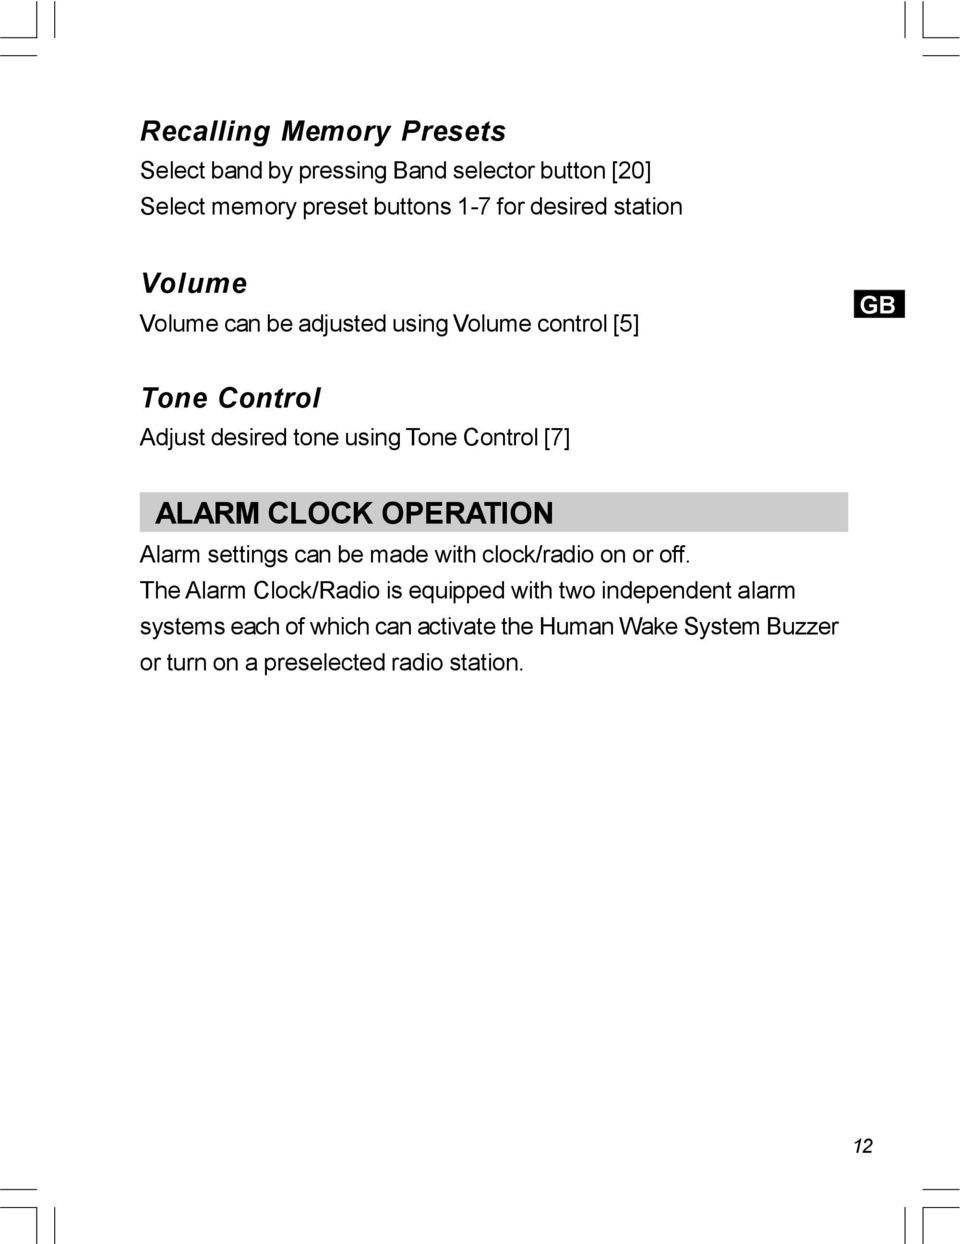 ALARM CLOCK OPERATION Alarm settings can be made with clock/radio on or off.